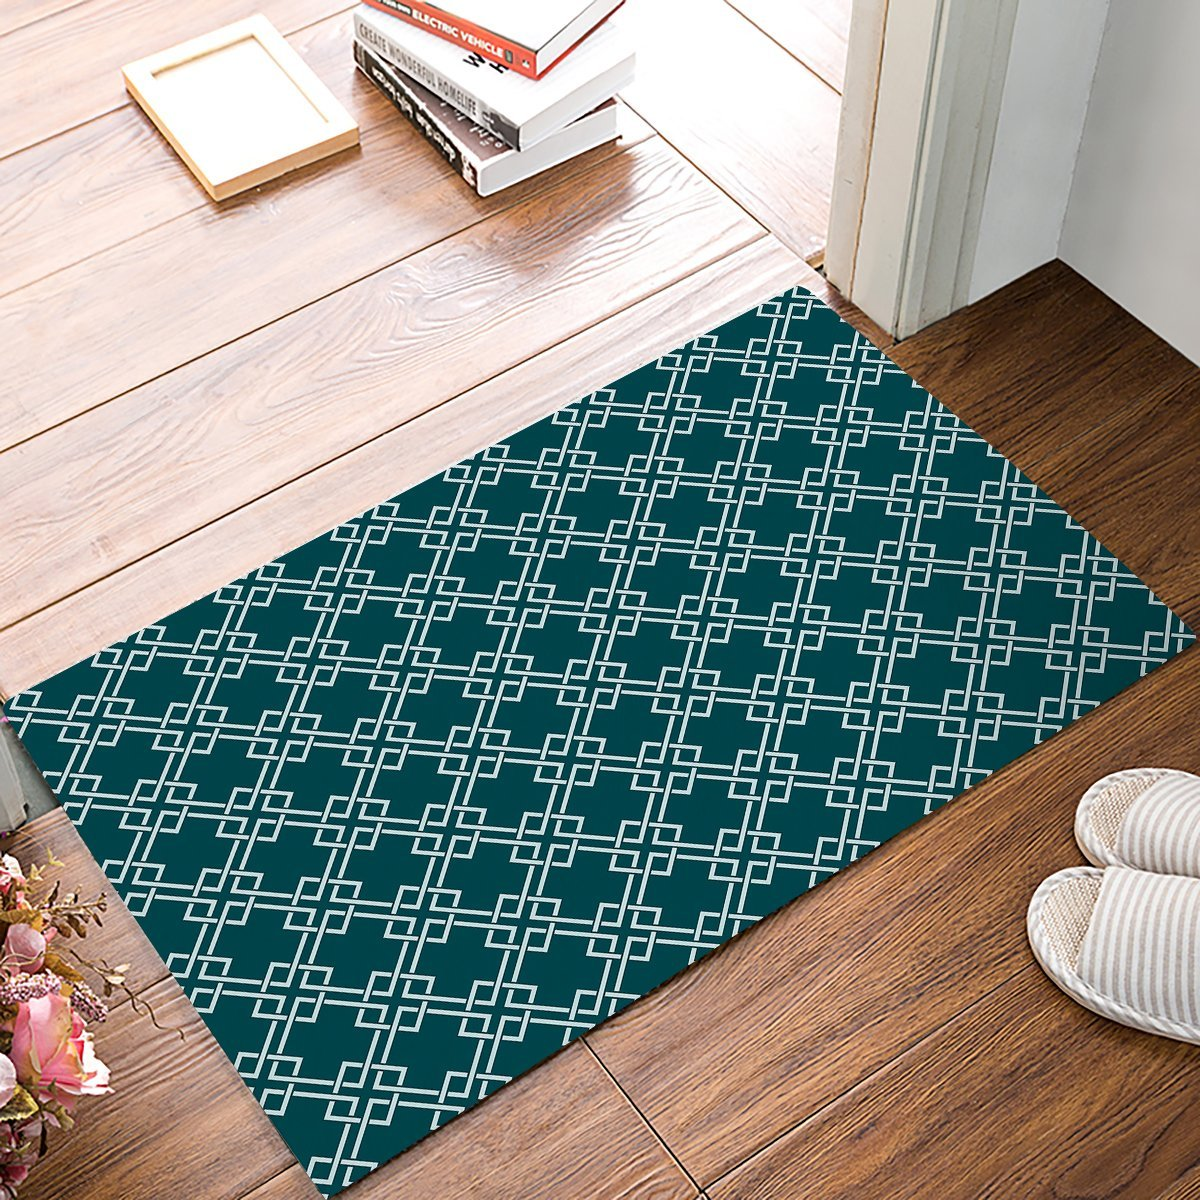 White Kitchen Floor Mats: Classic Blue And White Geometric Pattern Door Mats Kitchen